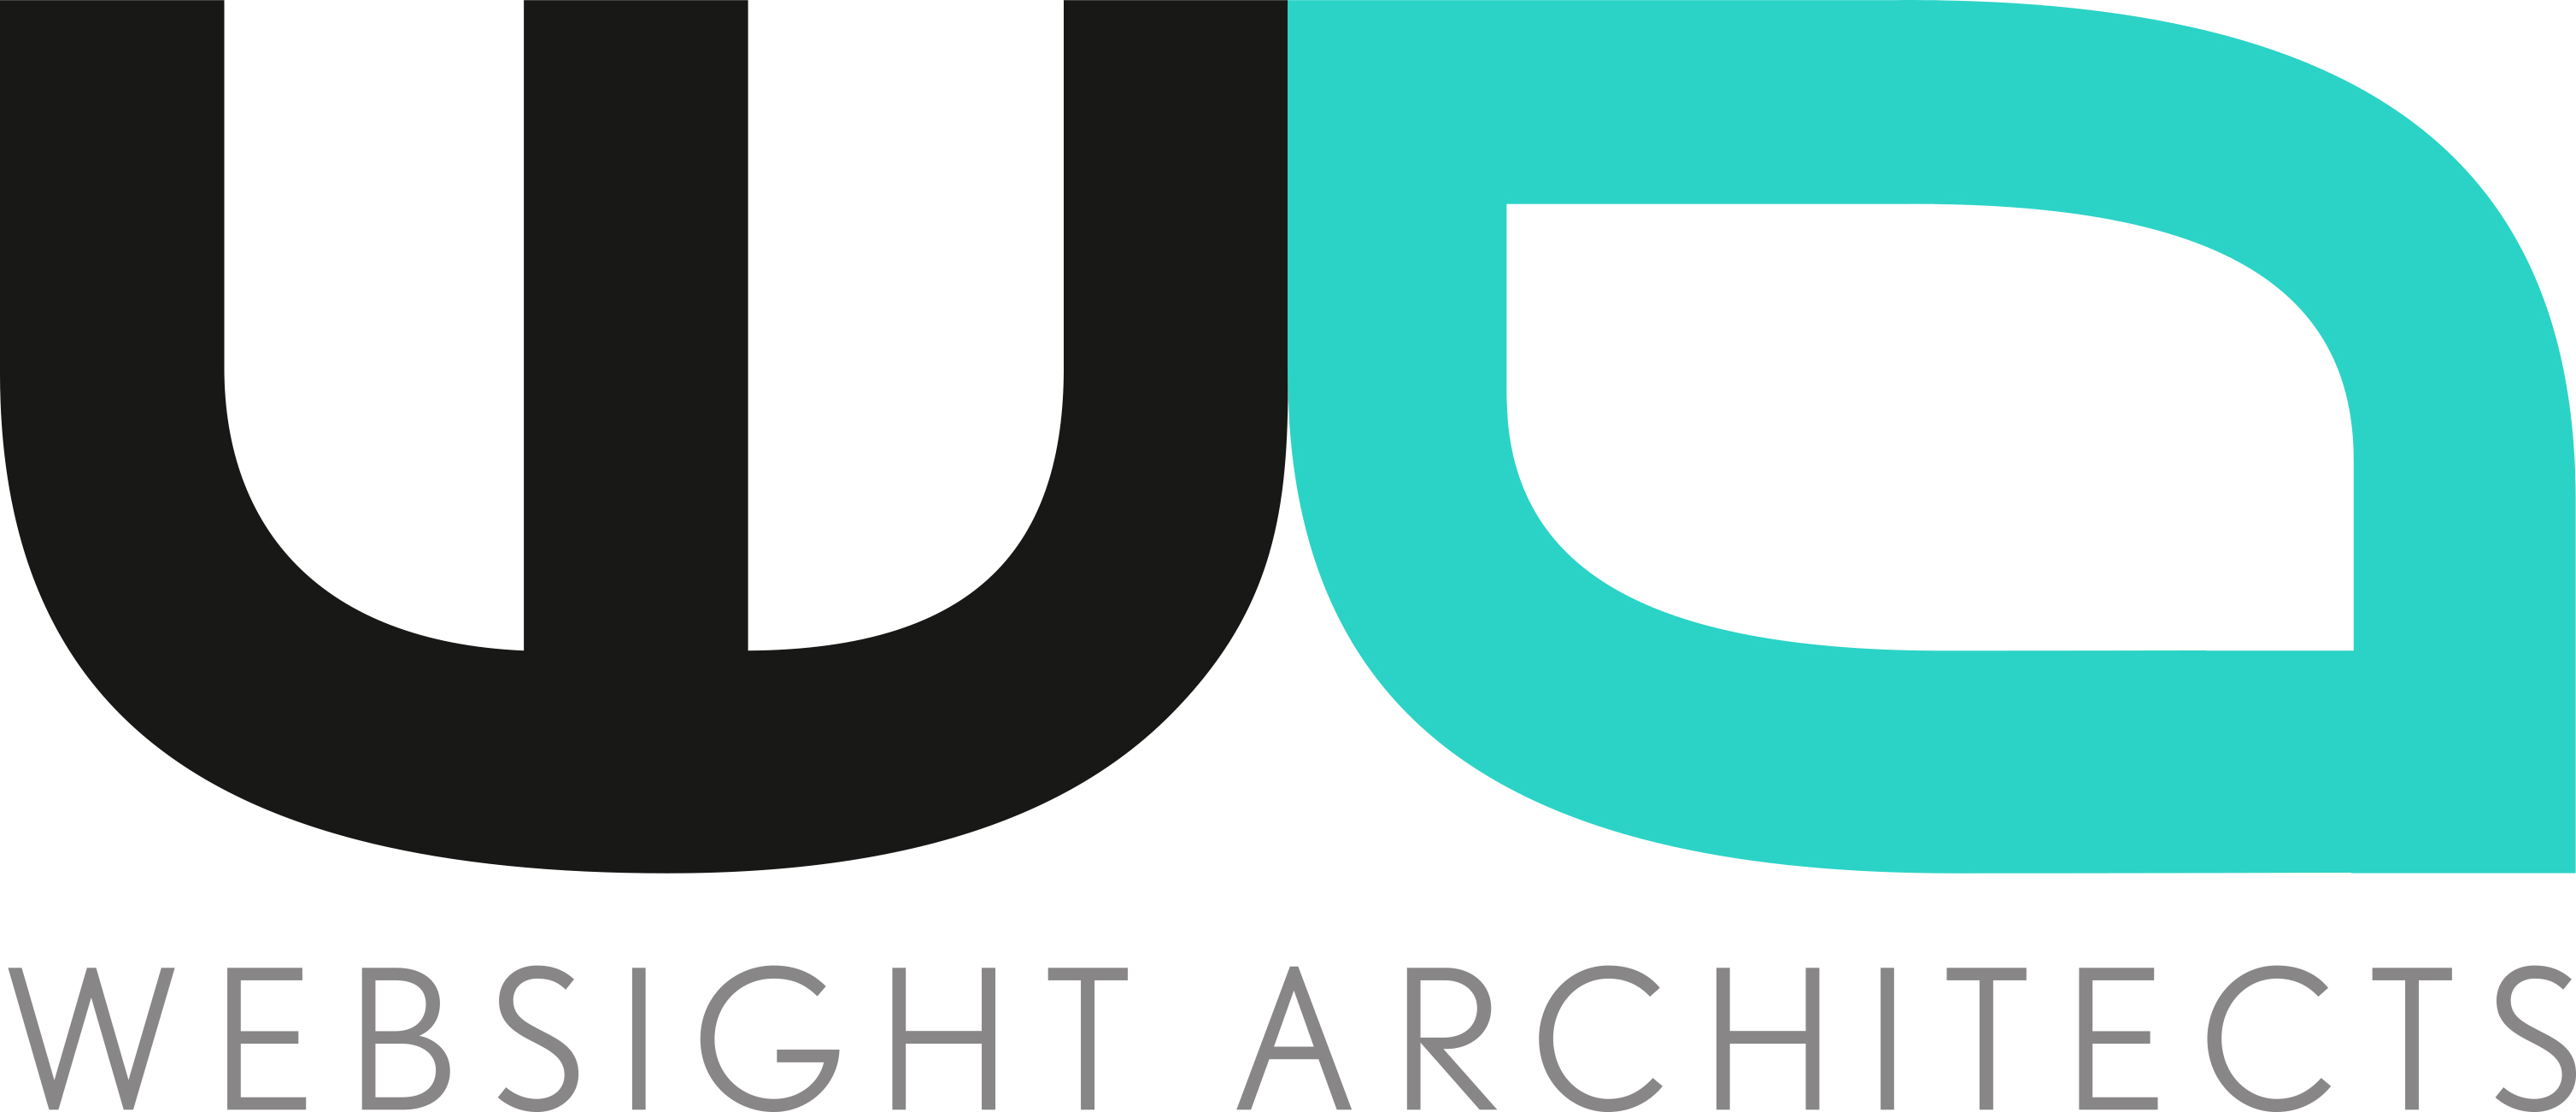 Web Sight Architects